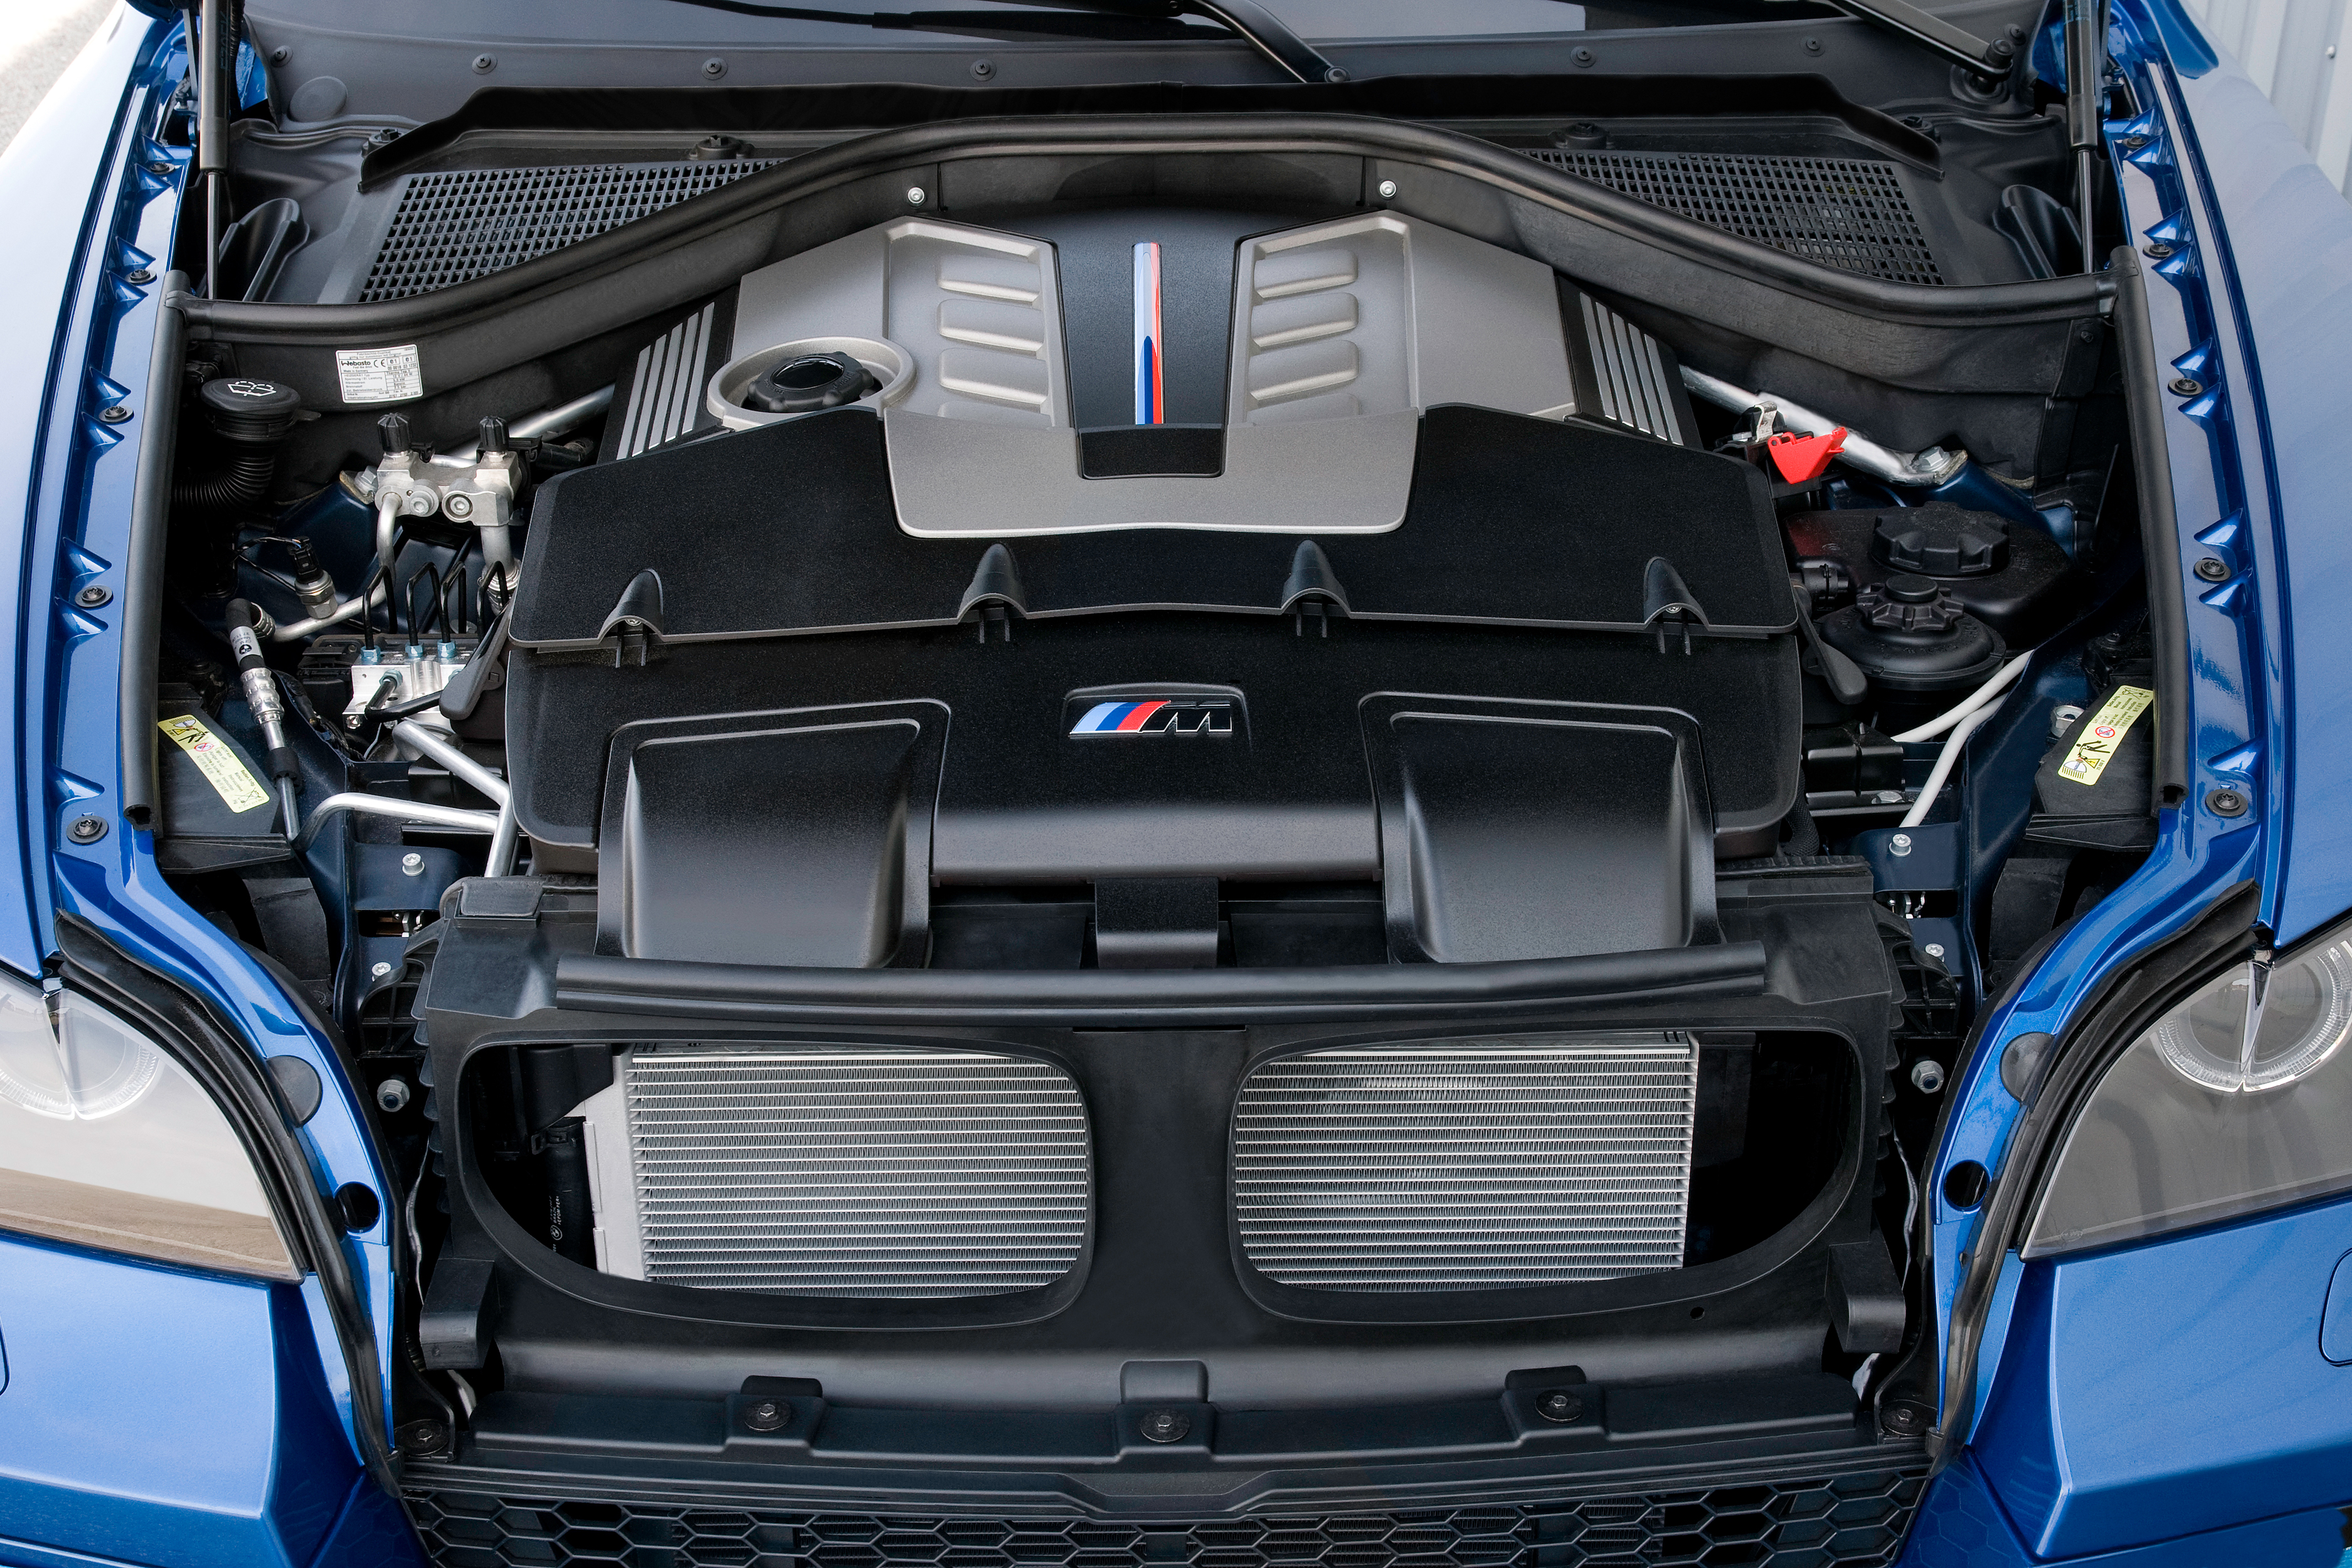 Engine Pictures BMW M5 F10 Concept!-p90045822.jpg